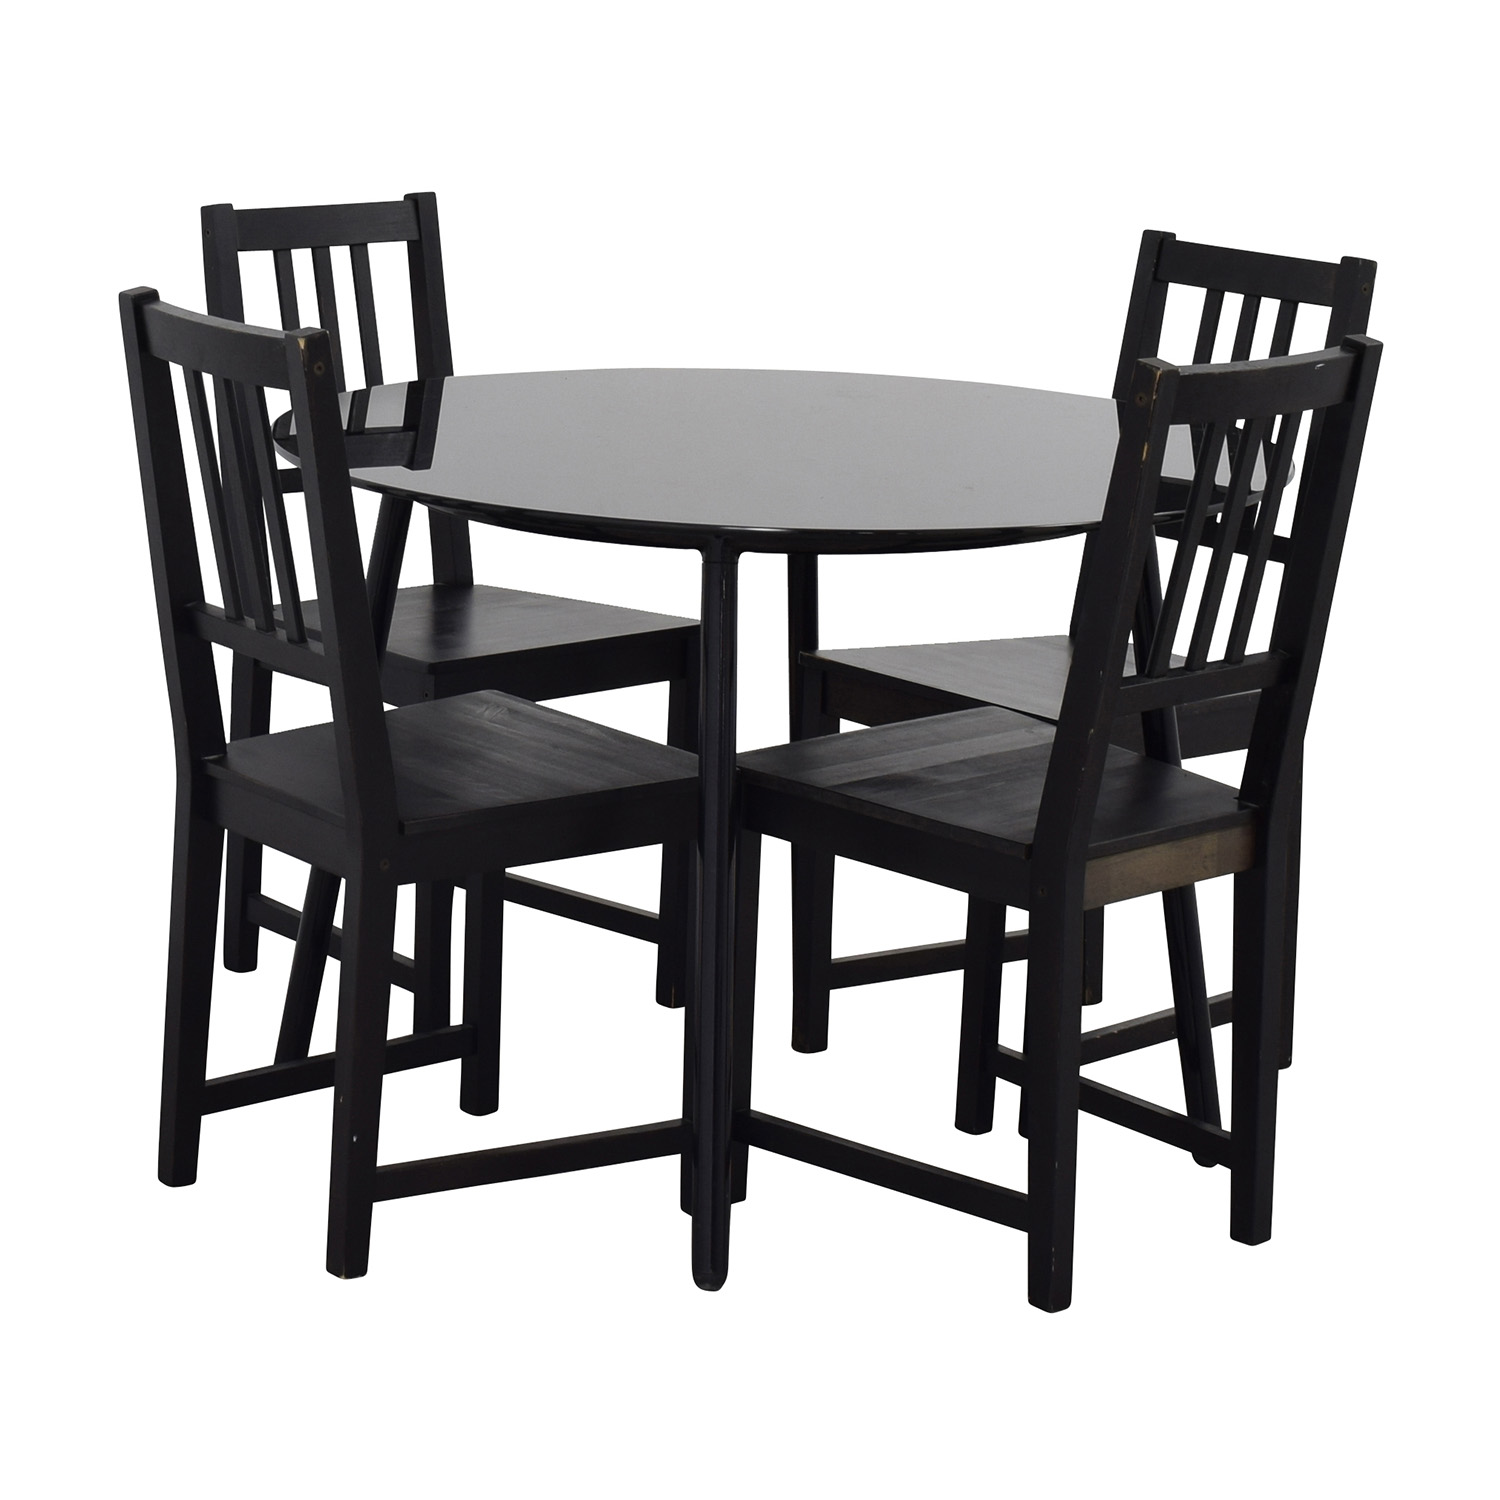 glass and wood dining table chairs target tables 31 off ikea